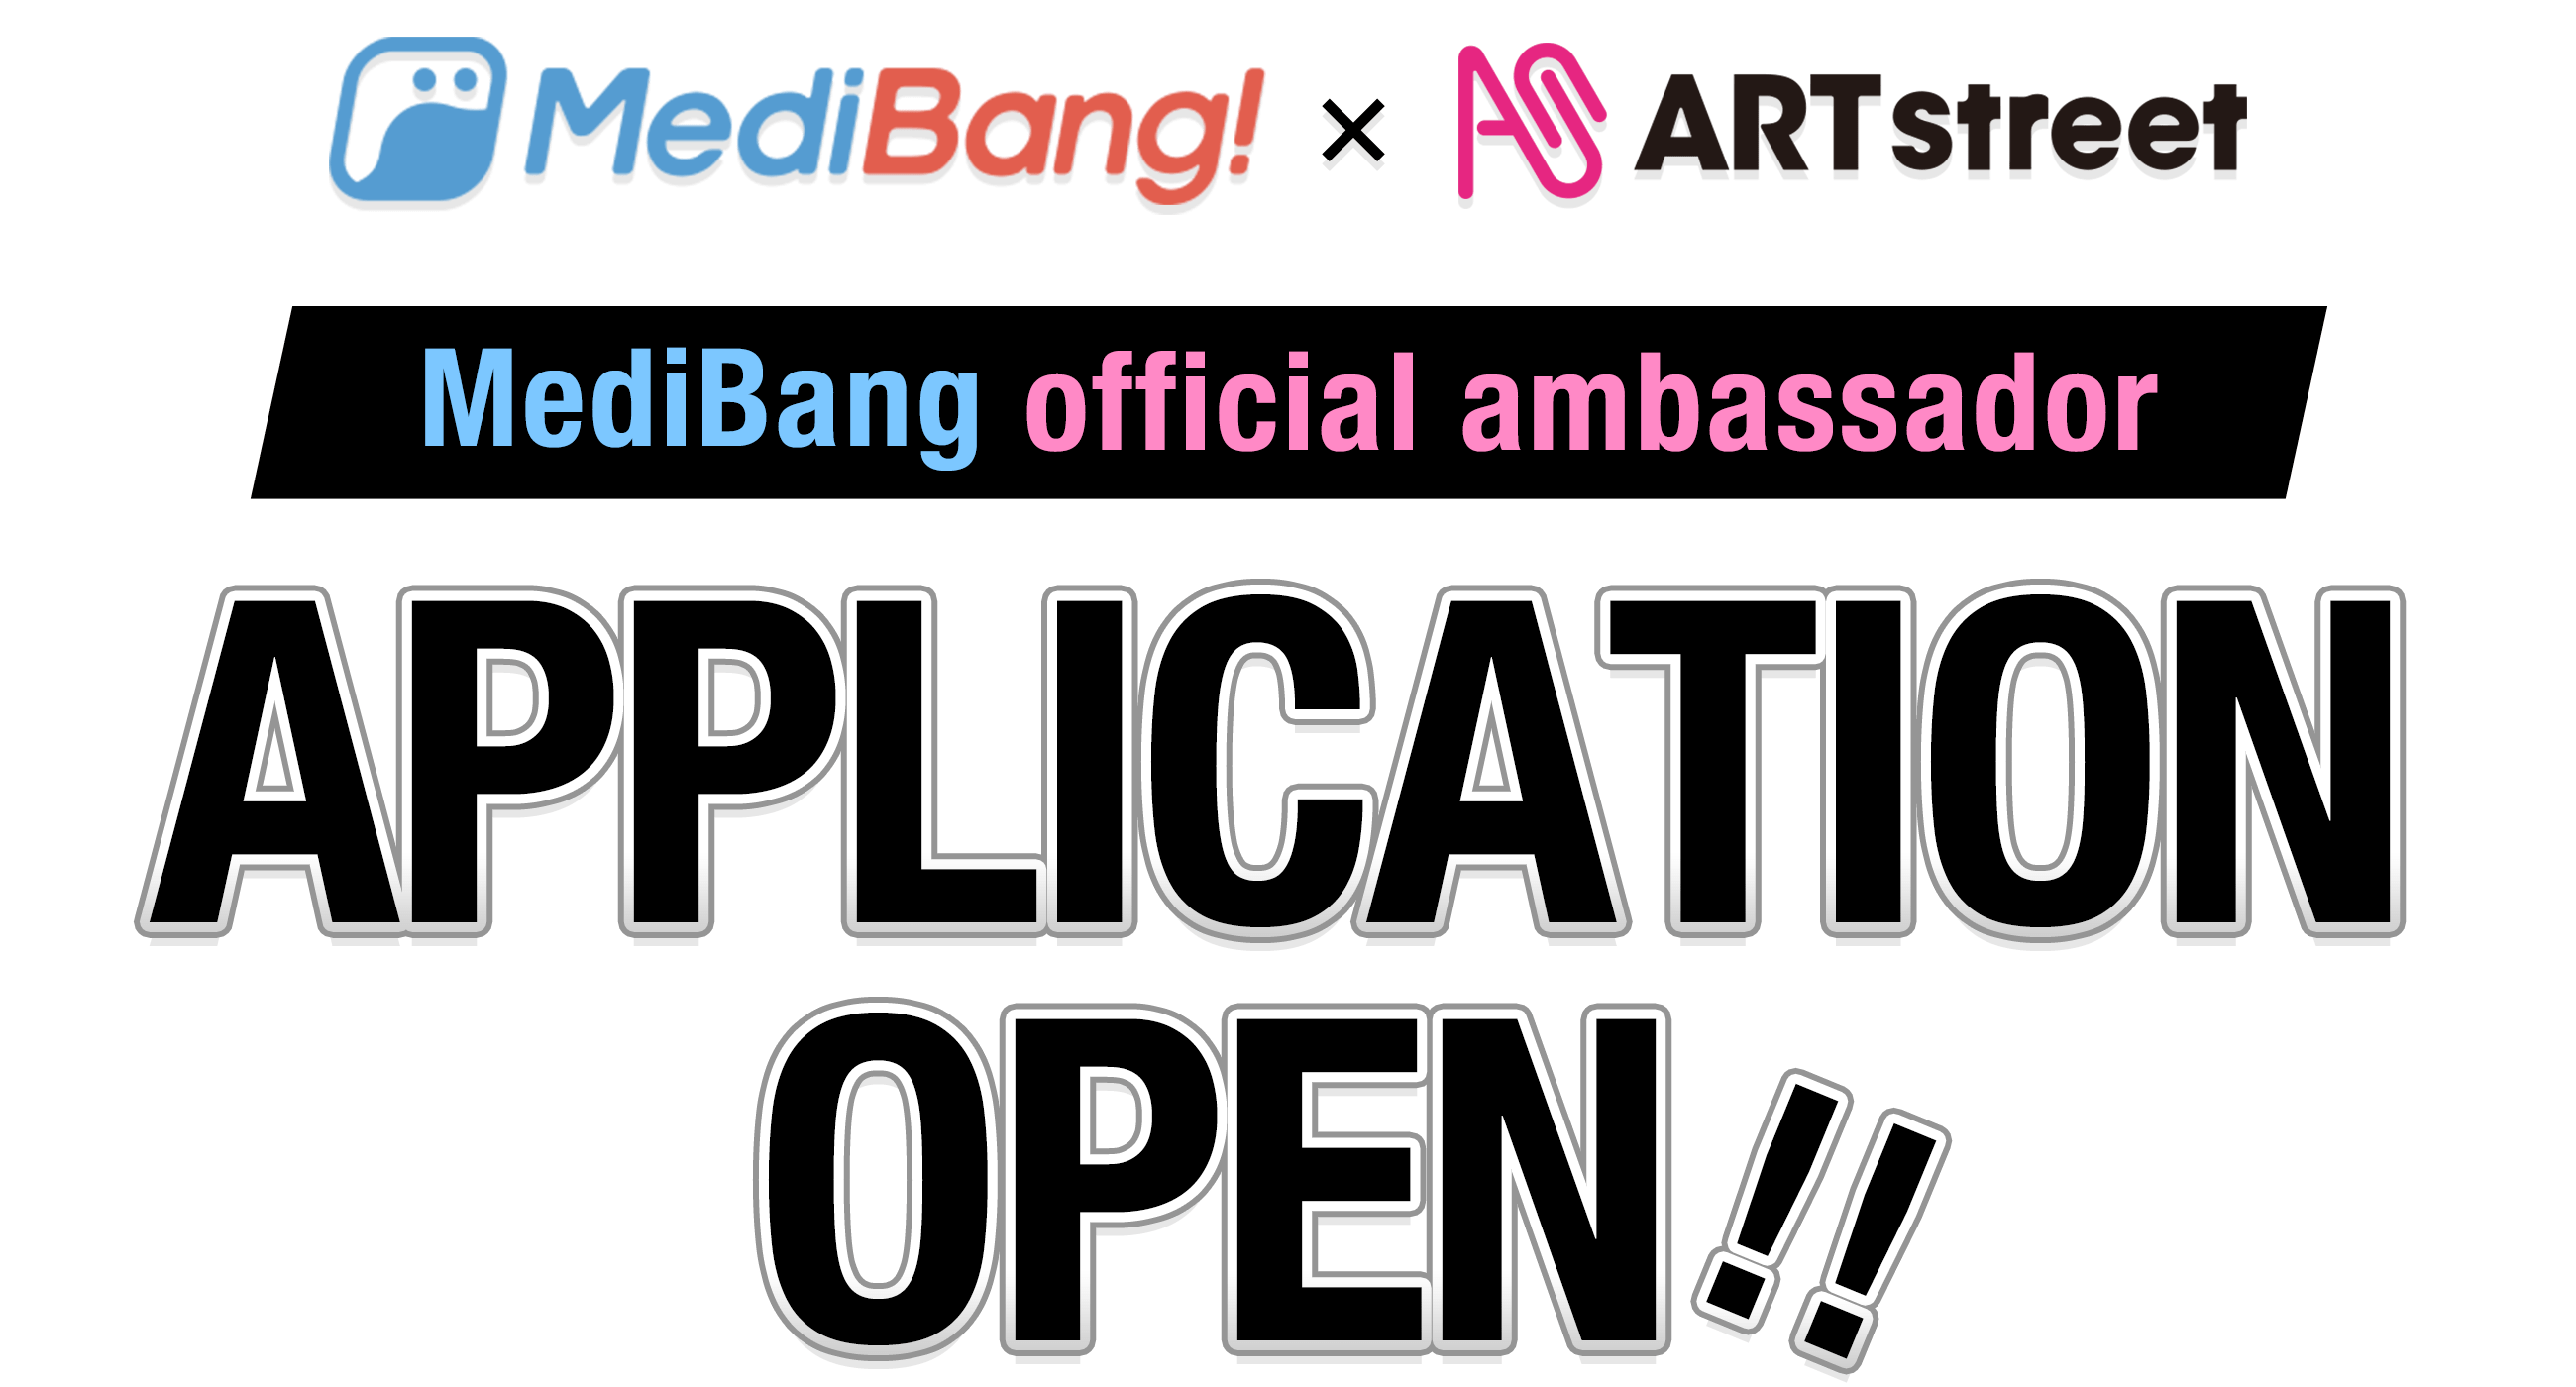 MediBang official ambassador Application open